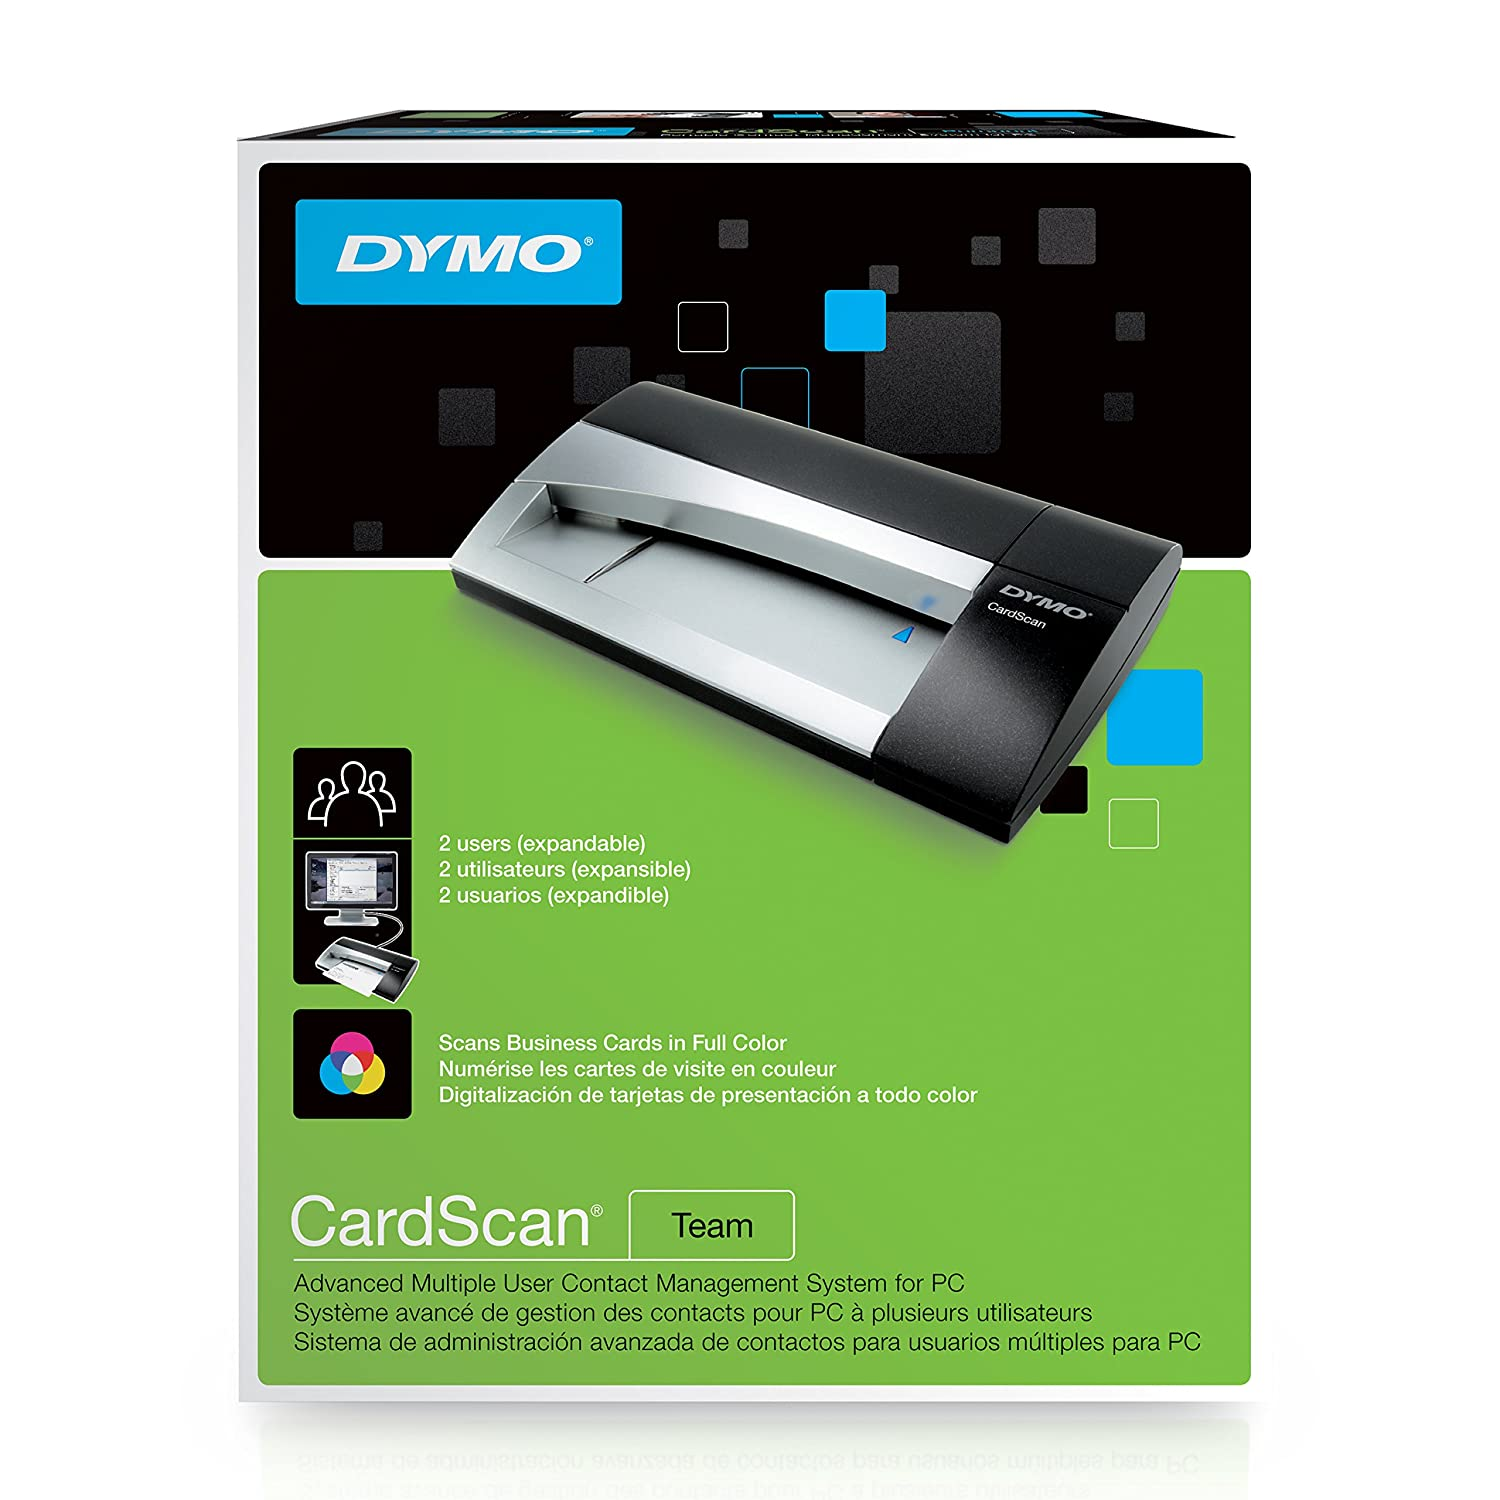 Amazon dymo cardscan v9 team multiple user contact management amazon dymo cardscan v9 team multiple user contact management system for pc 1760687 electronics reheart Image collections